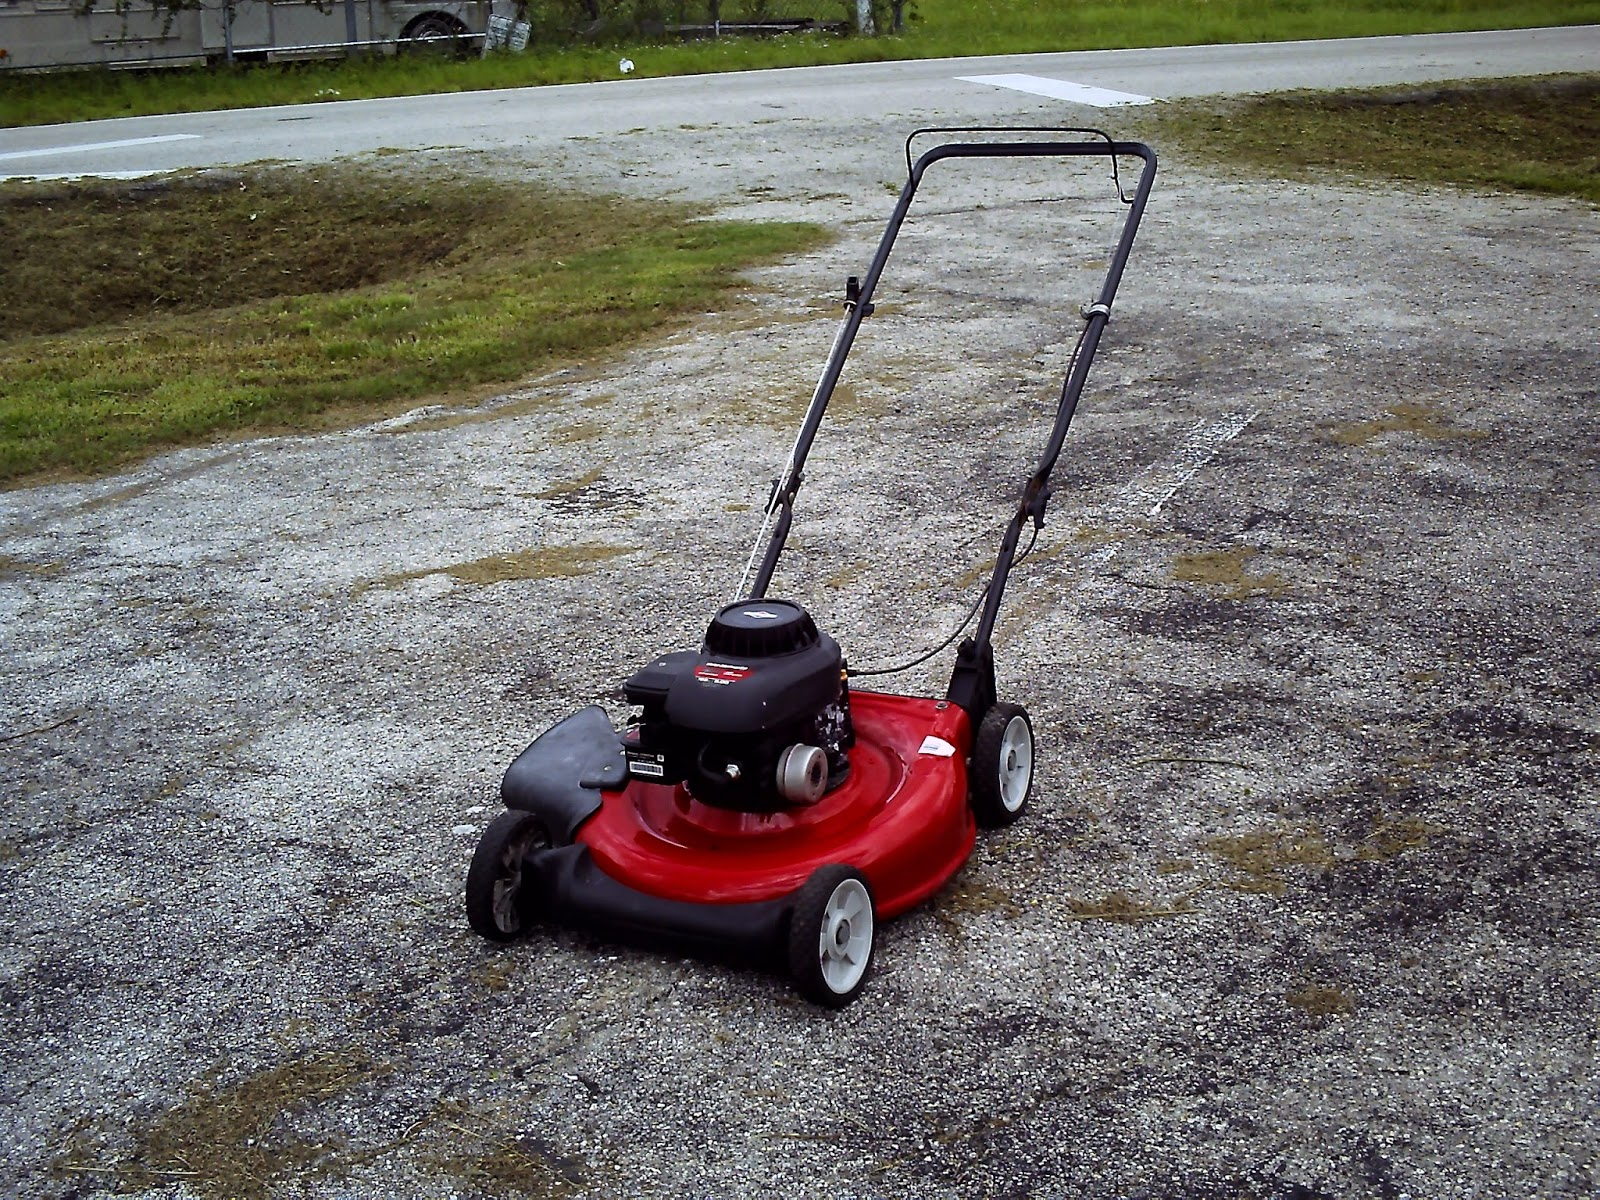 mtd 21 push mower rebuilt and resored to it s former glory has a briggs stratton engine with 5 horses to back it up excellent running working  [ 1600 x 1200 Pixel ]